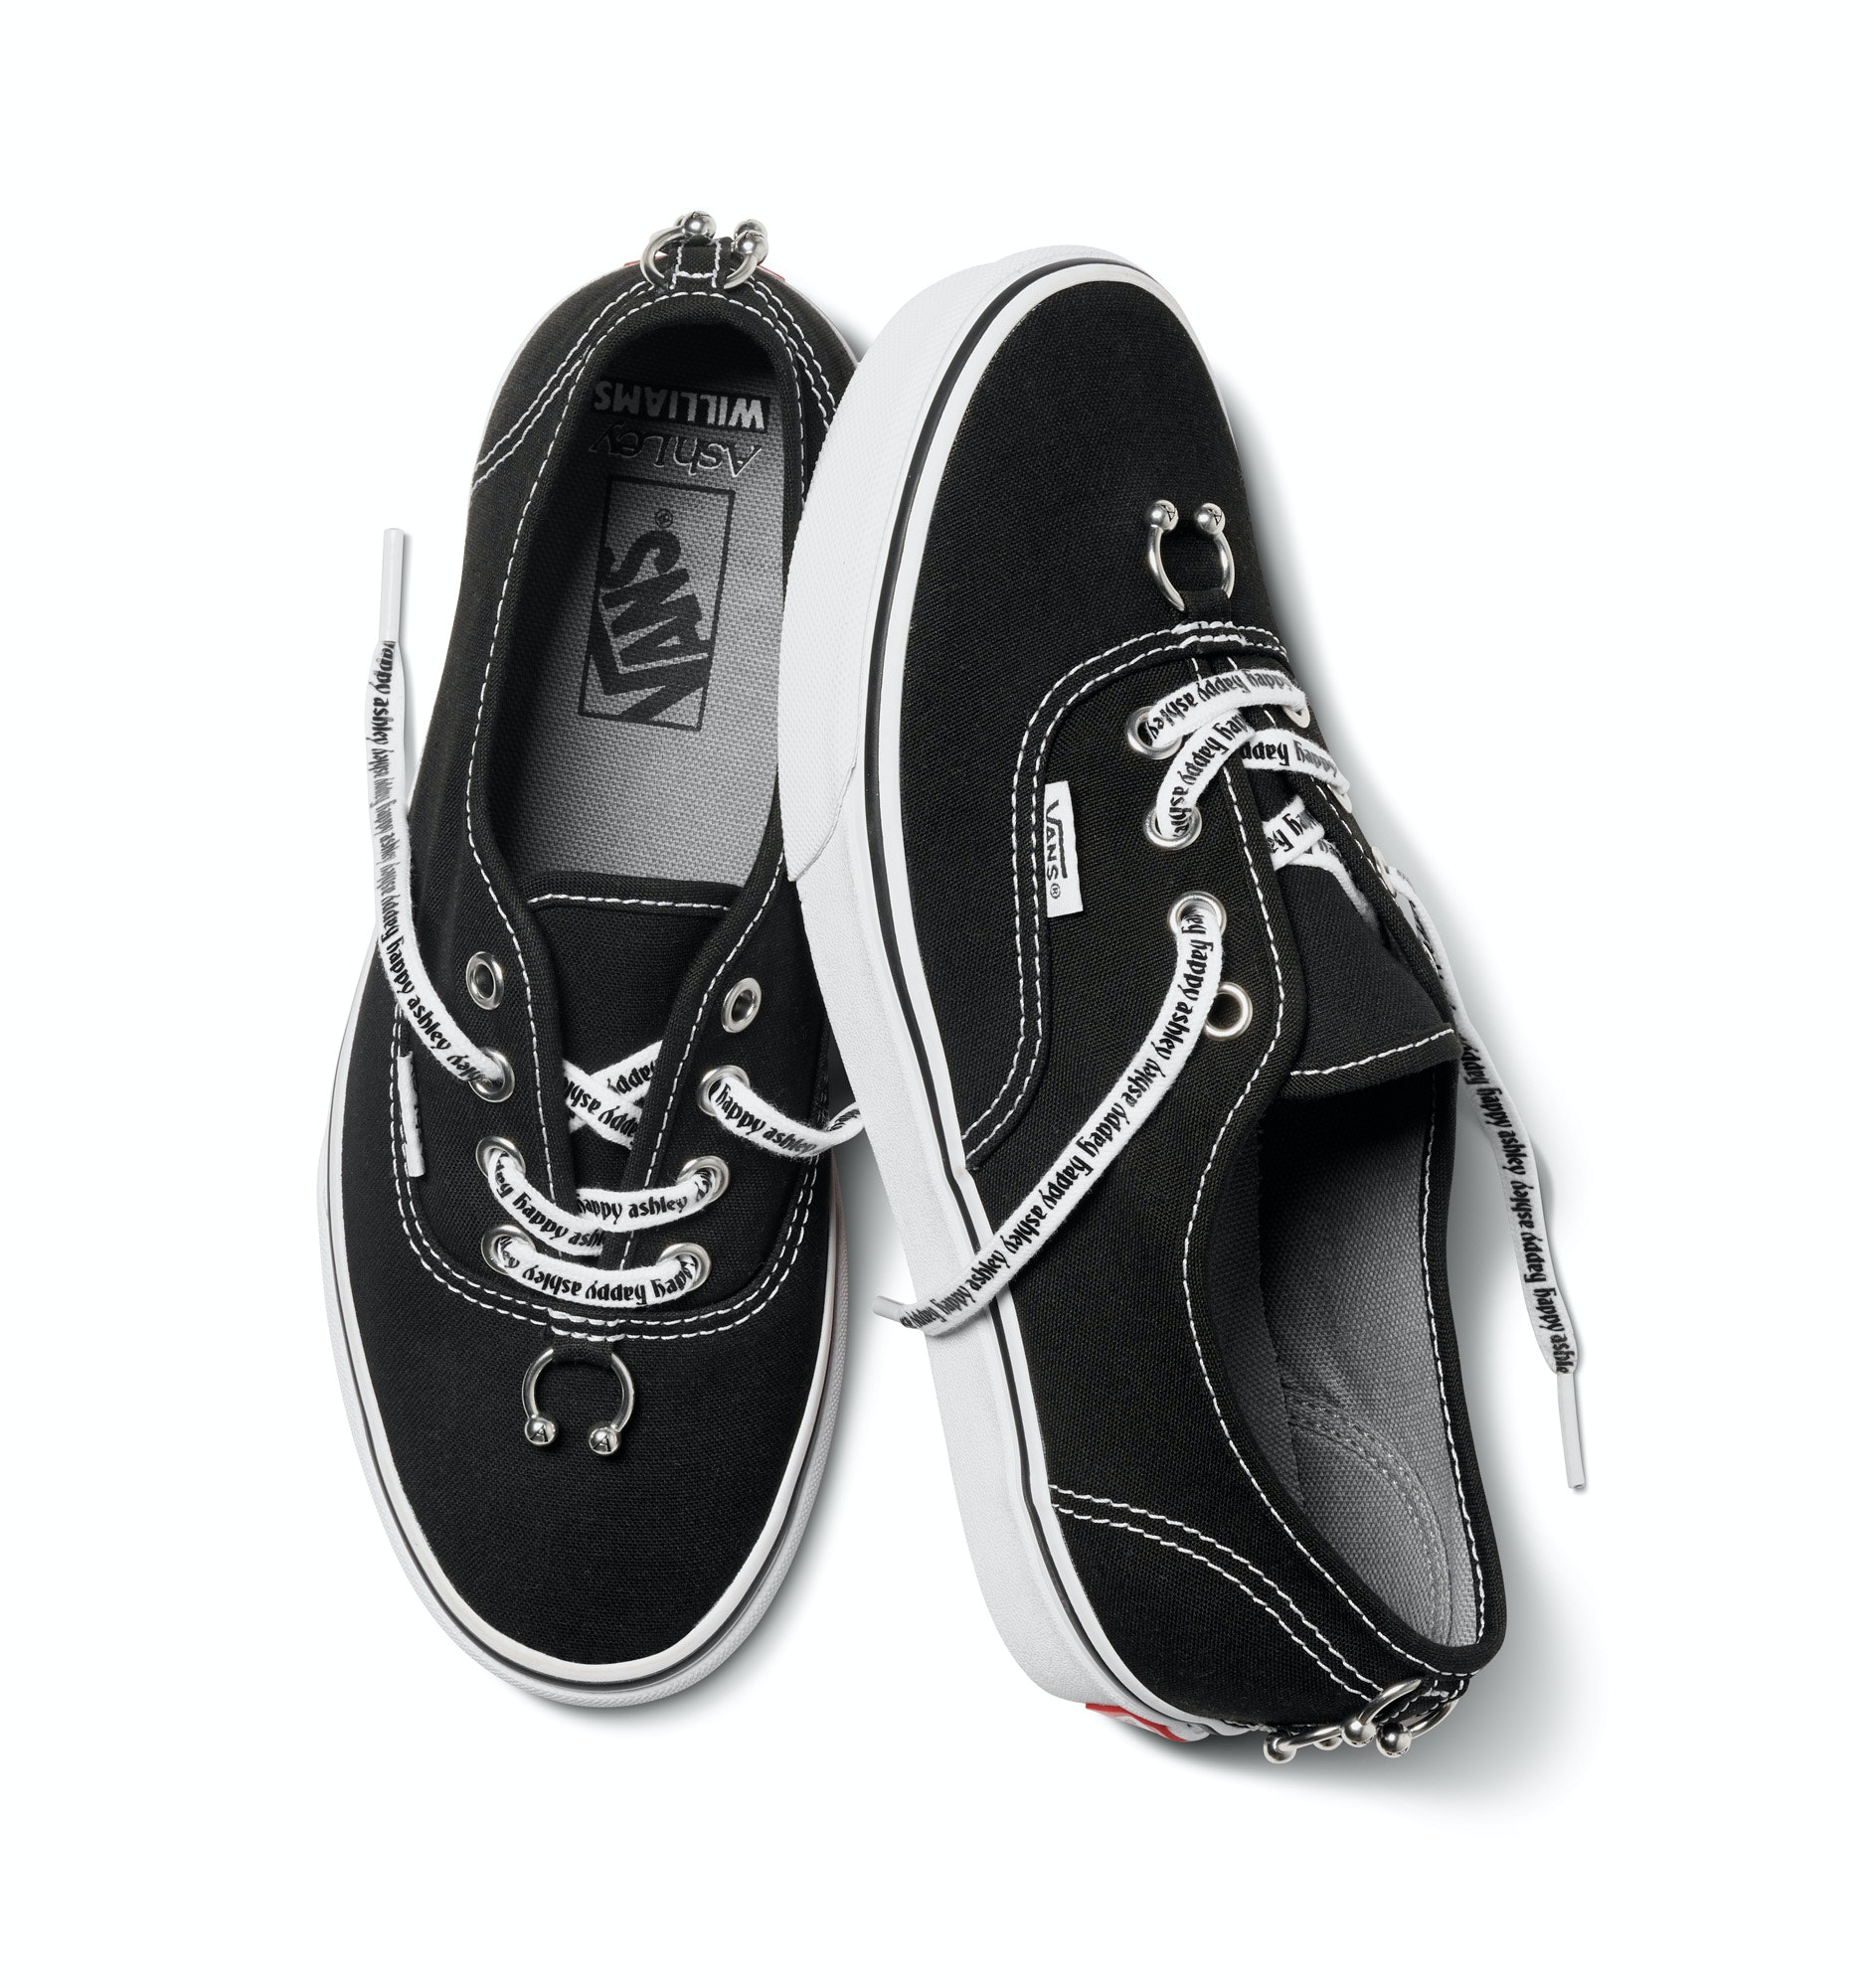 fb52064d7ae The Vans x Ashley Williams Collection Features So Many Fun Prints   Designs